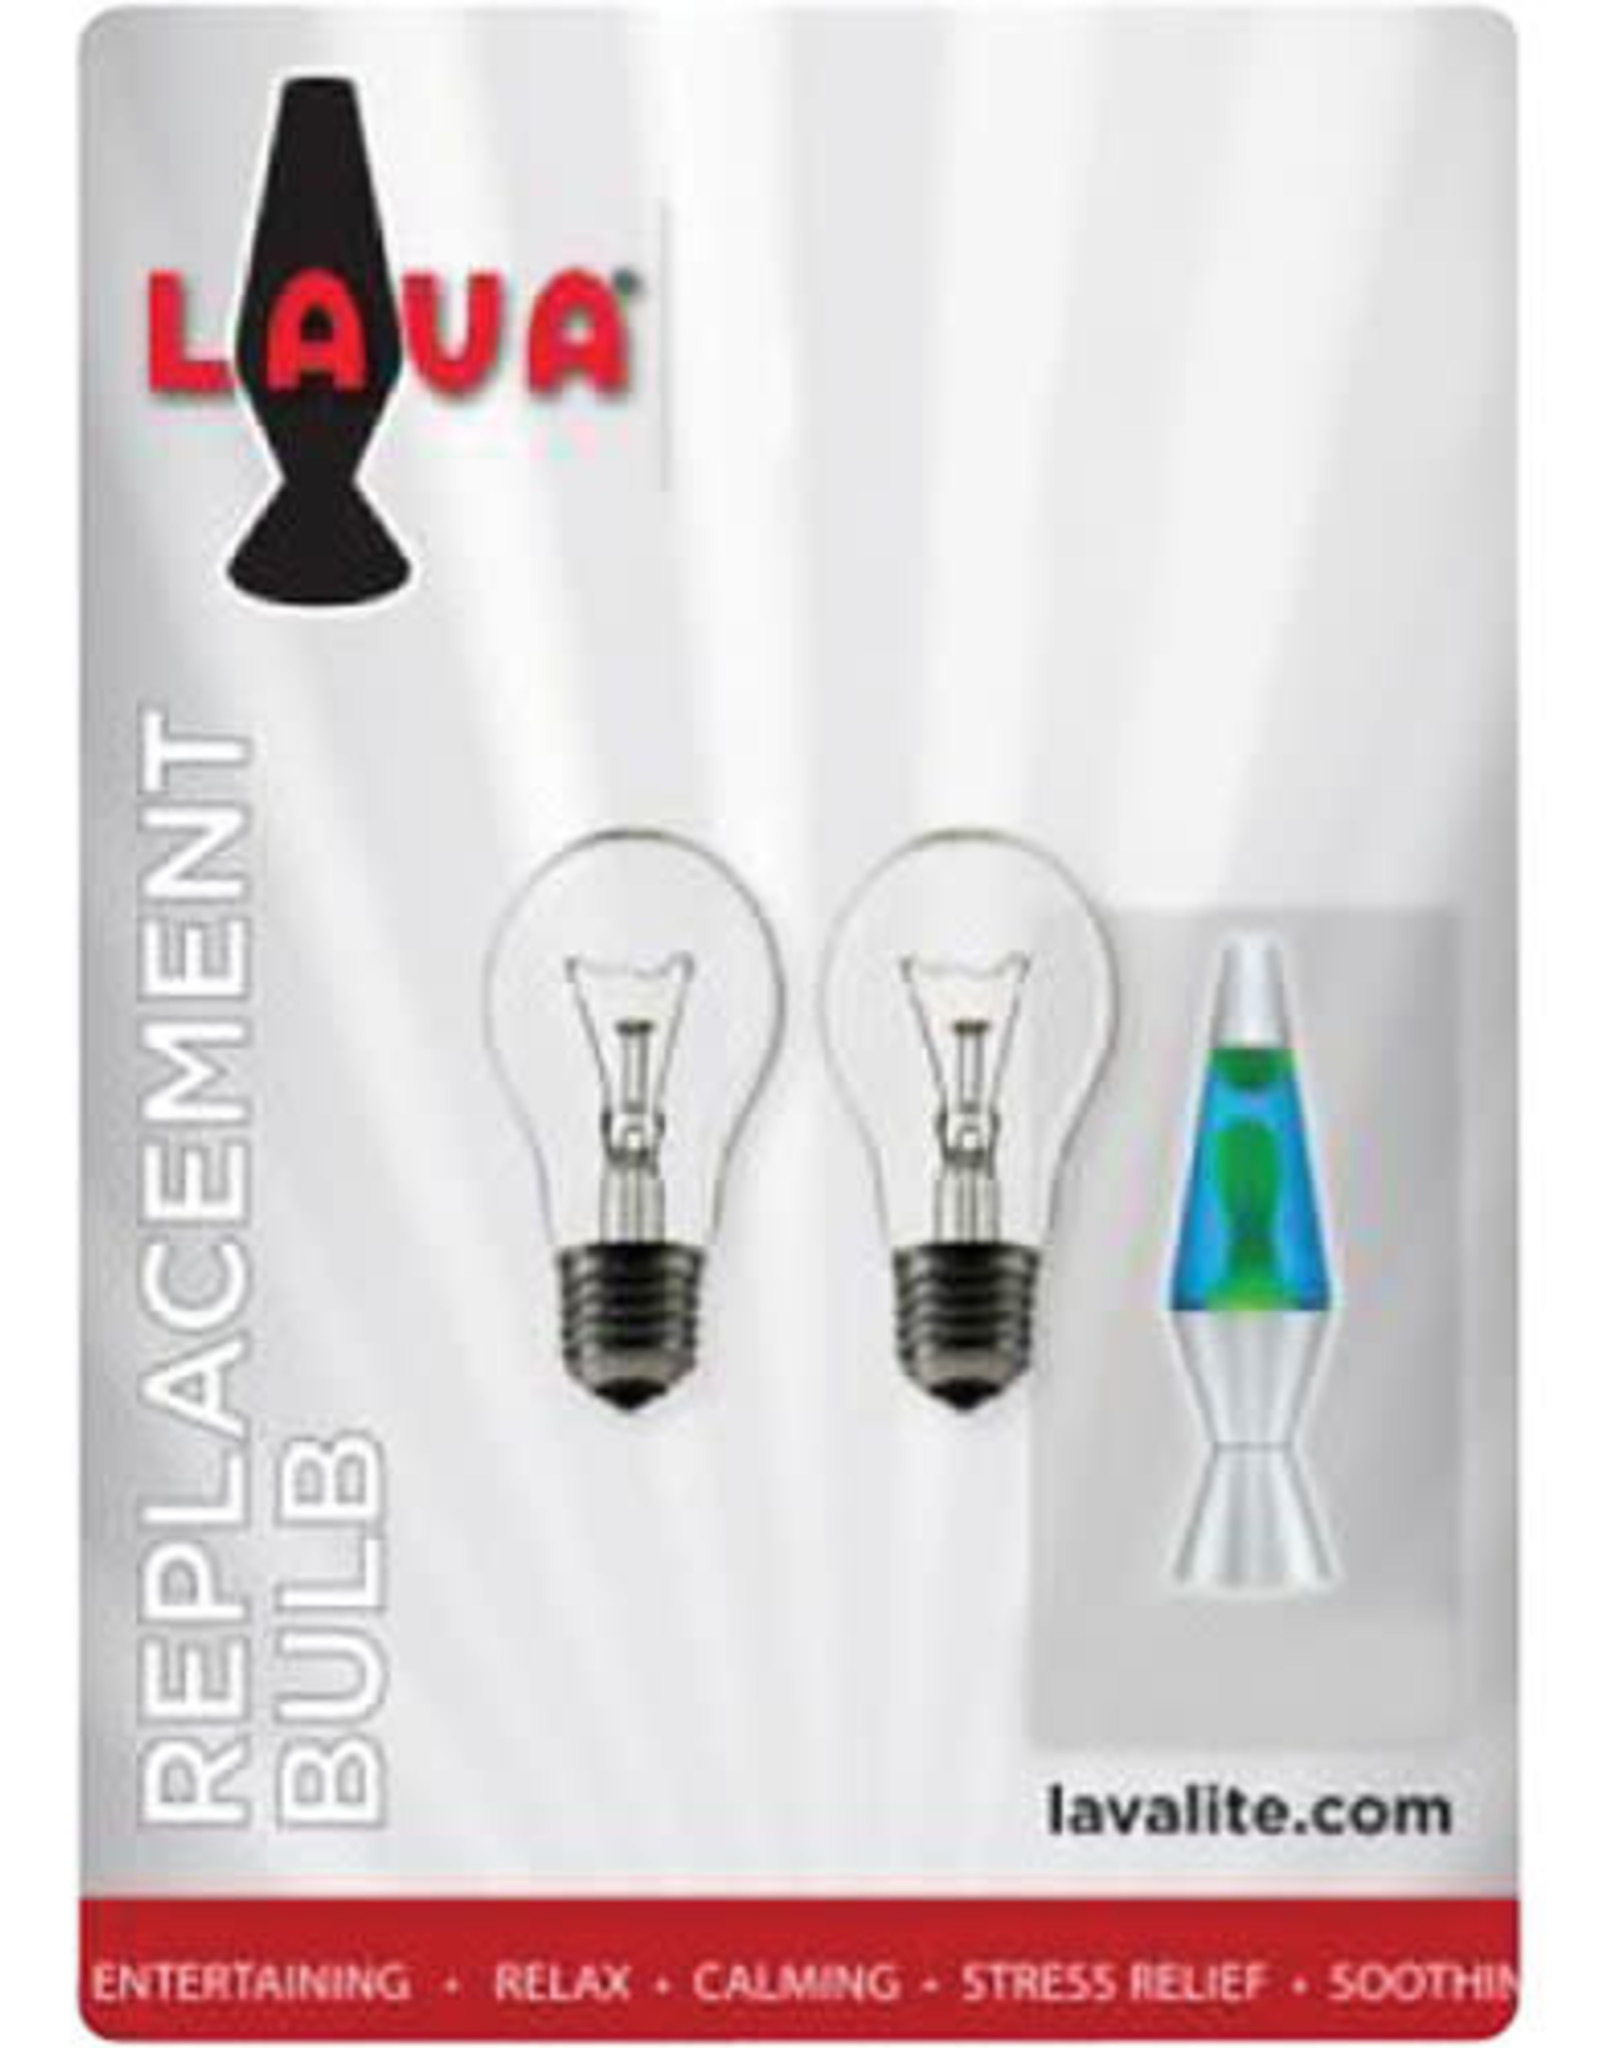 Lava Lamp Lava Lamp 40W LIGHT BULB 2PK